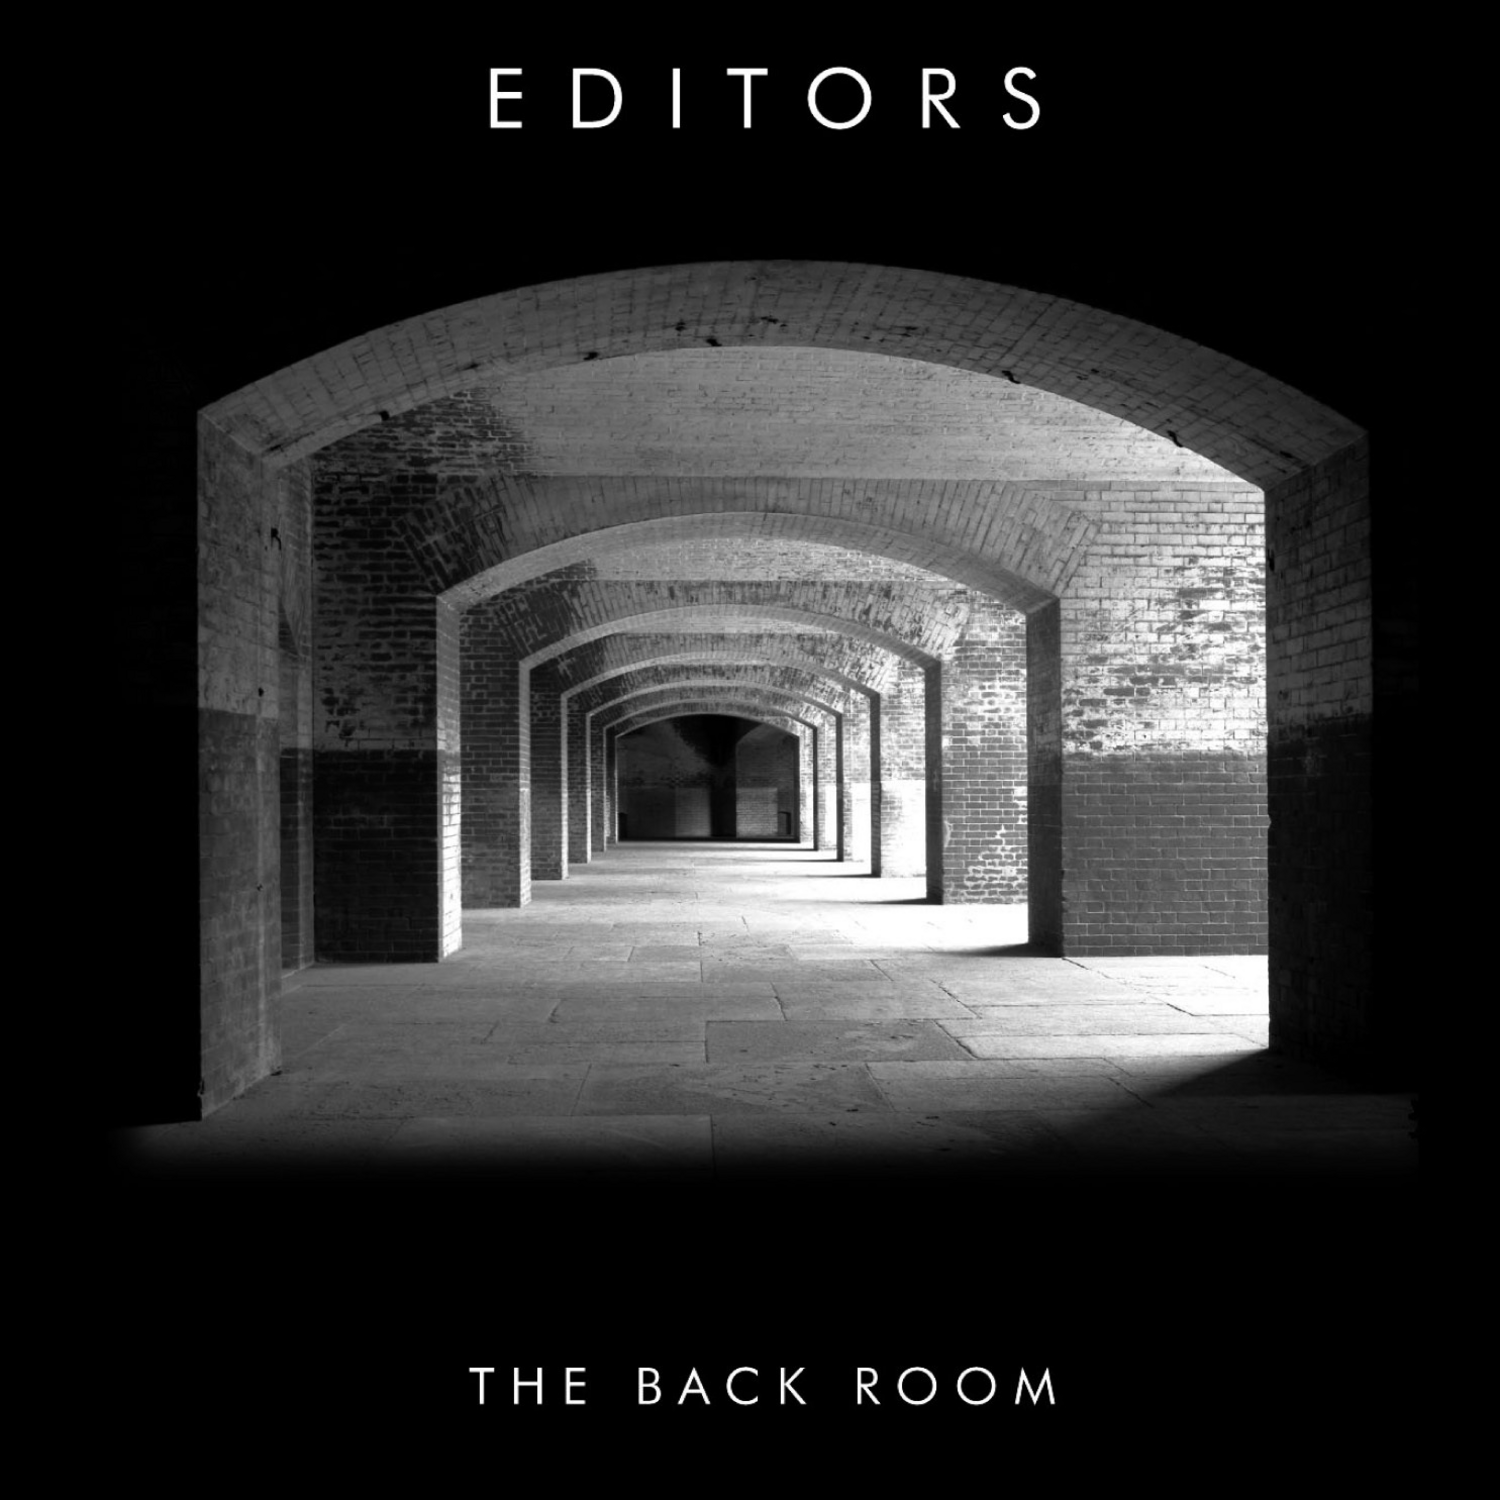 Editors - The Back Room (RSD 2020 Black Friday) White Colour Vinyl Record Album